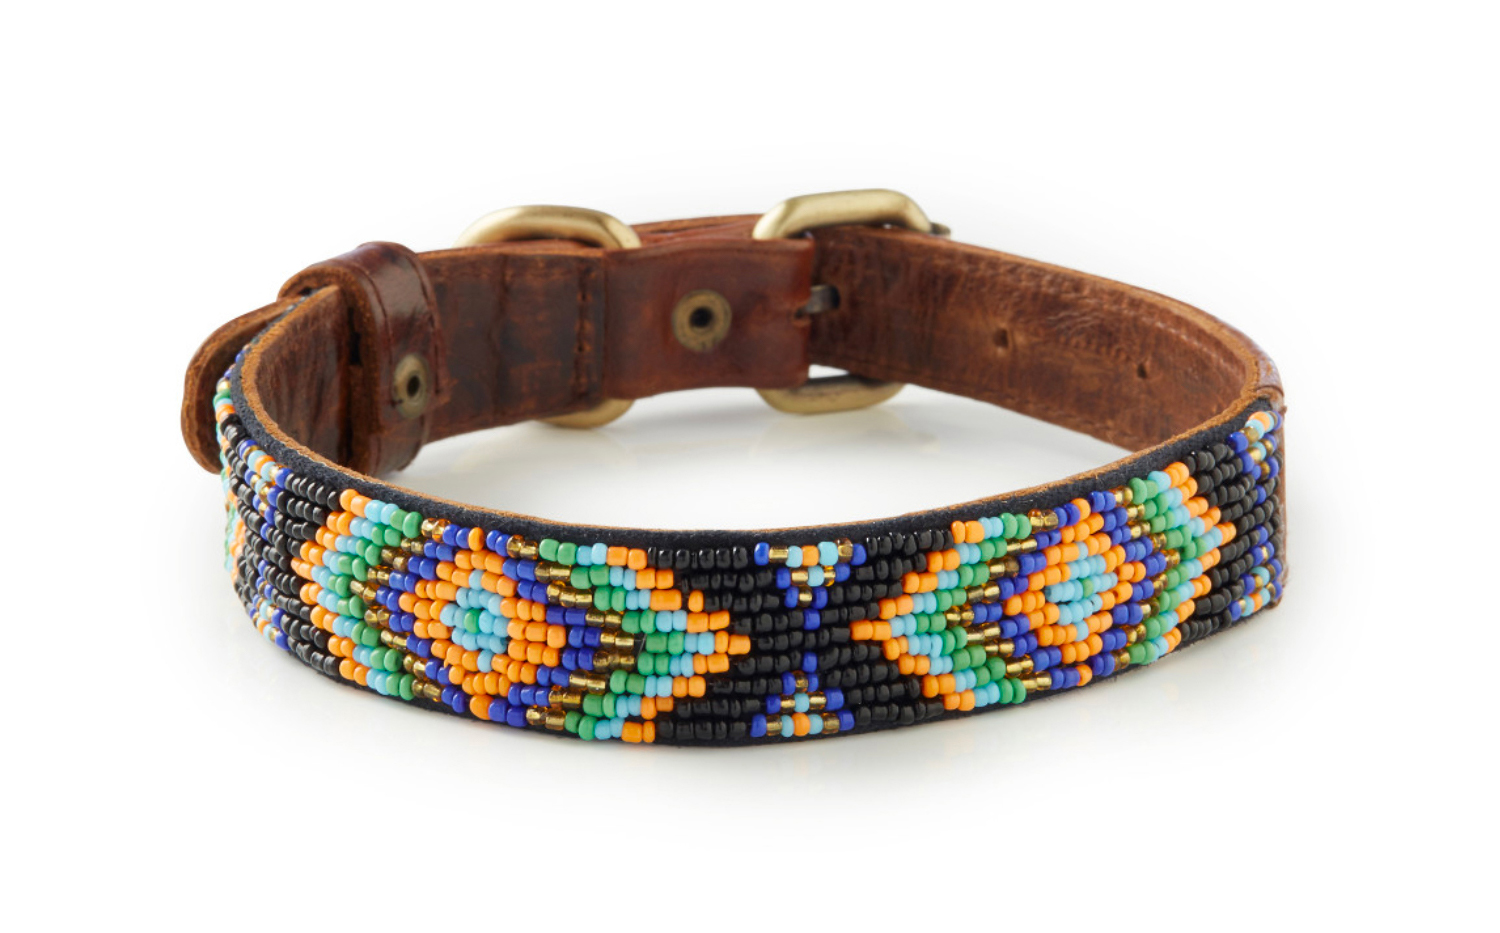 Berawa - Italian Leather Hand-Beaded Dog Collar